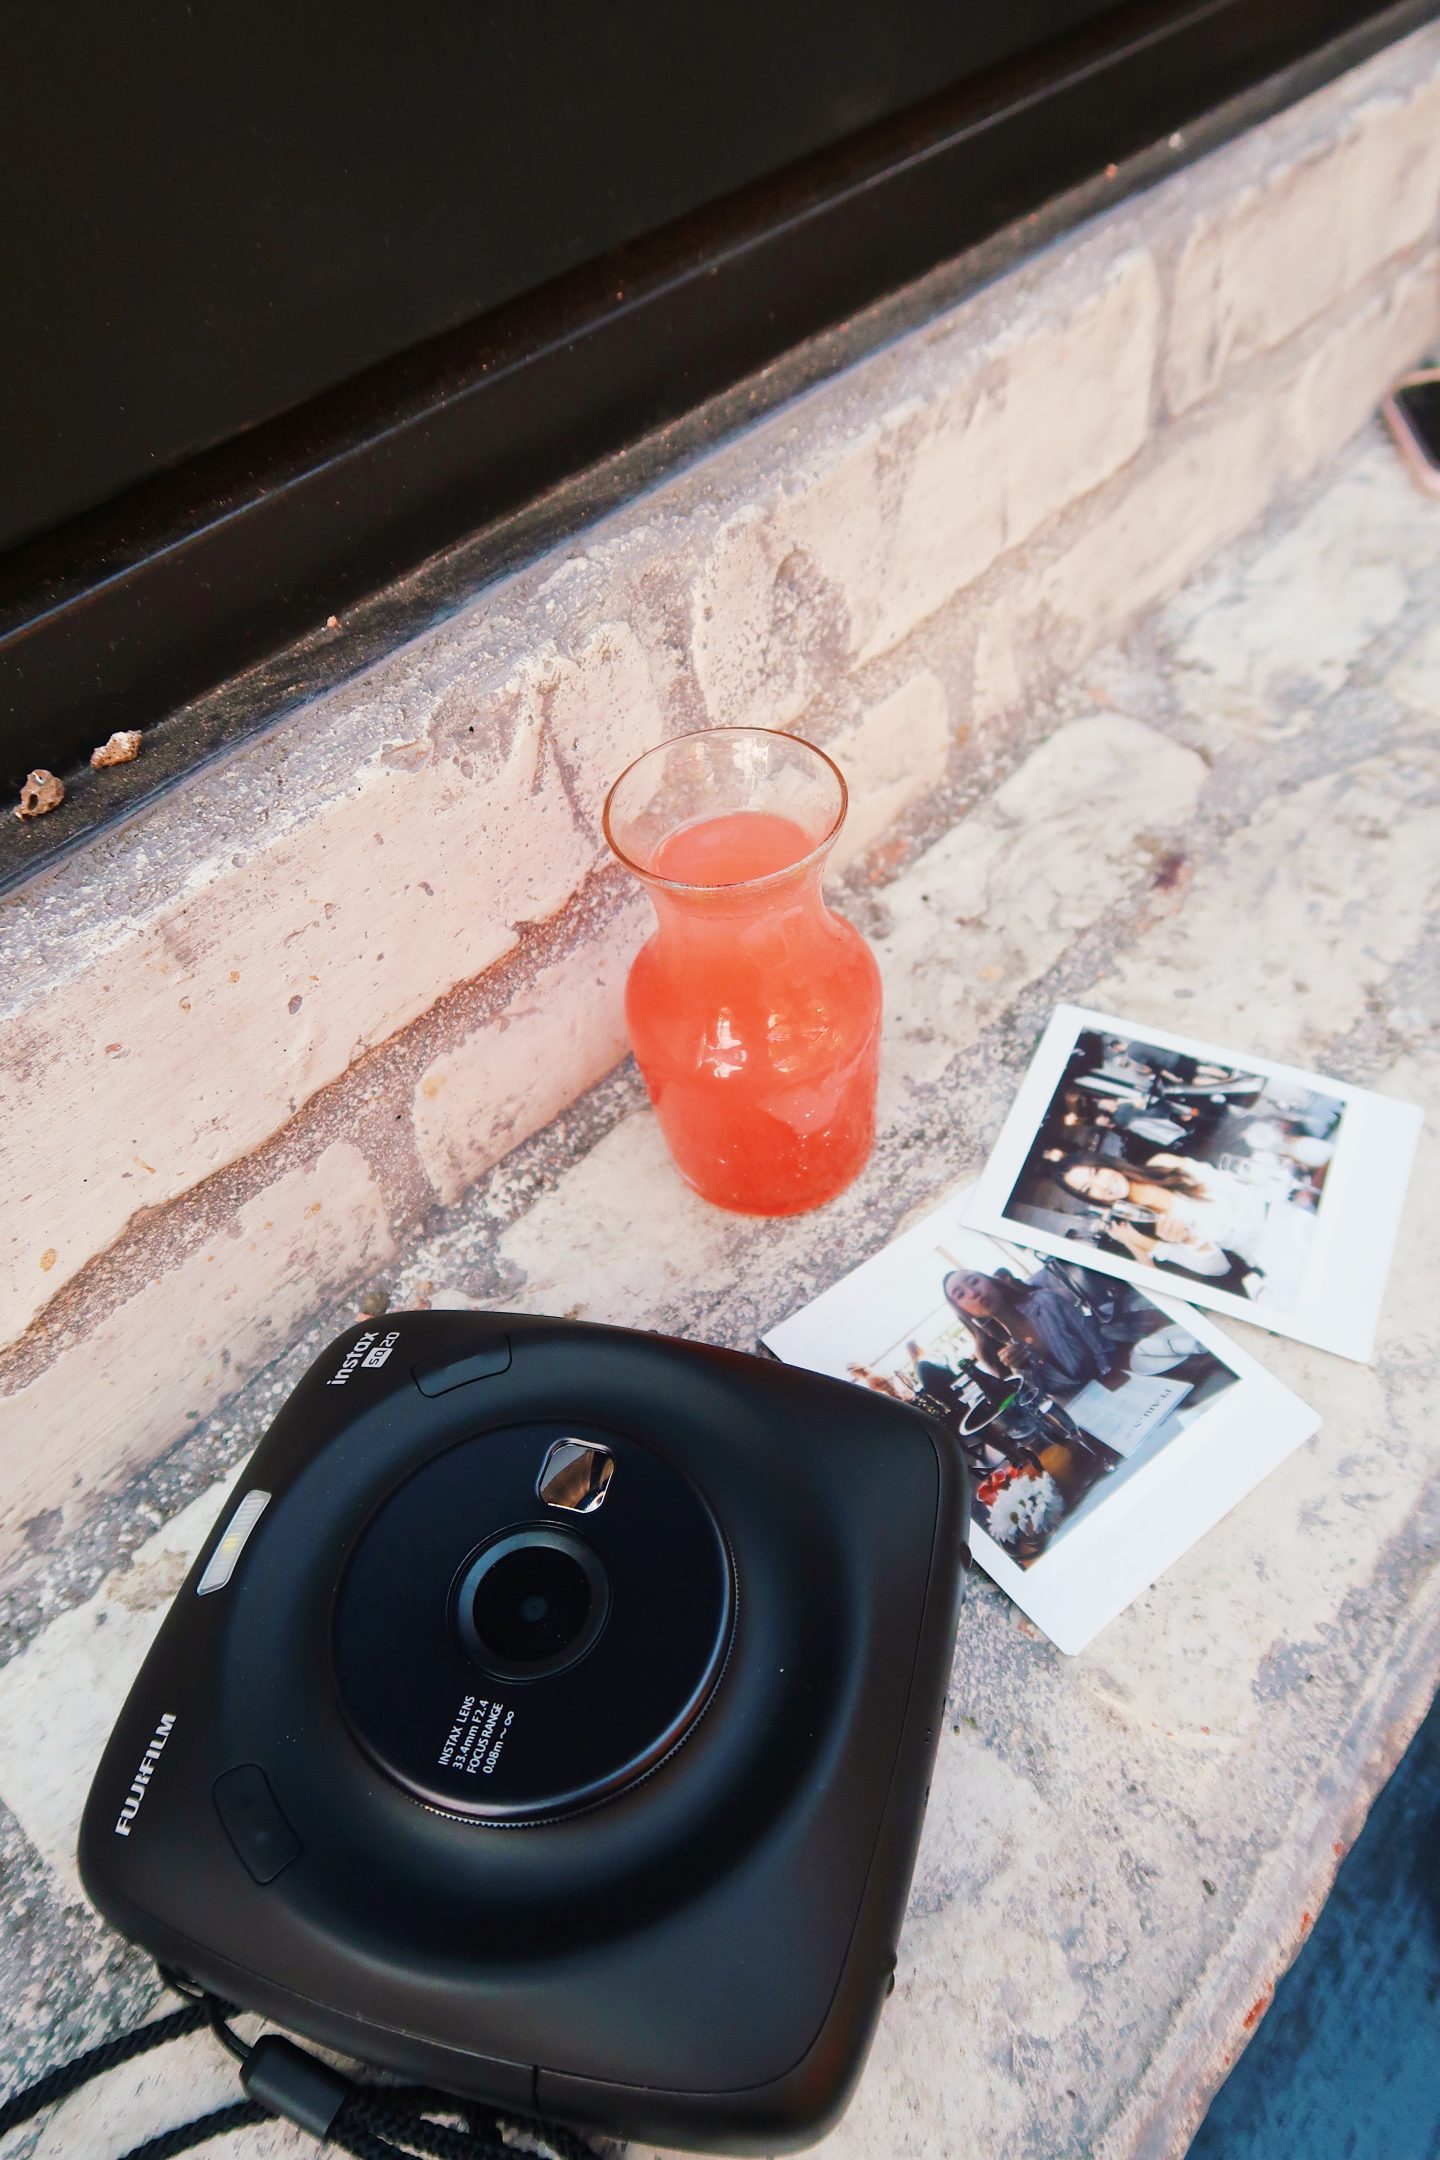 Delicious drinks while taking Polaroids in Los Angeles